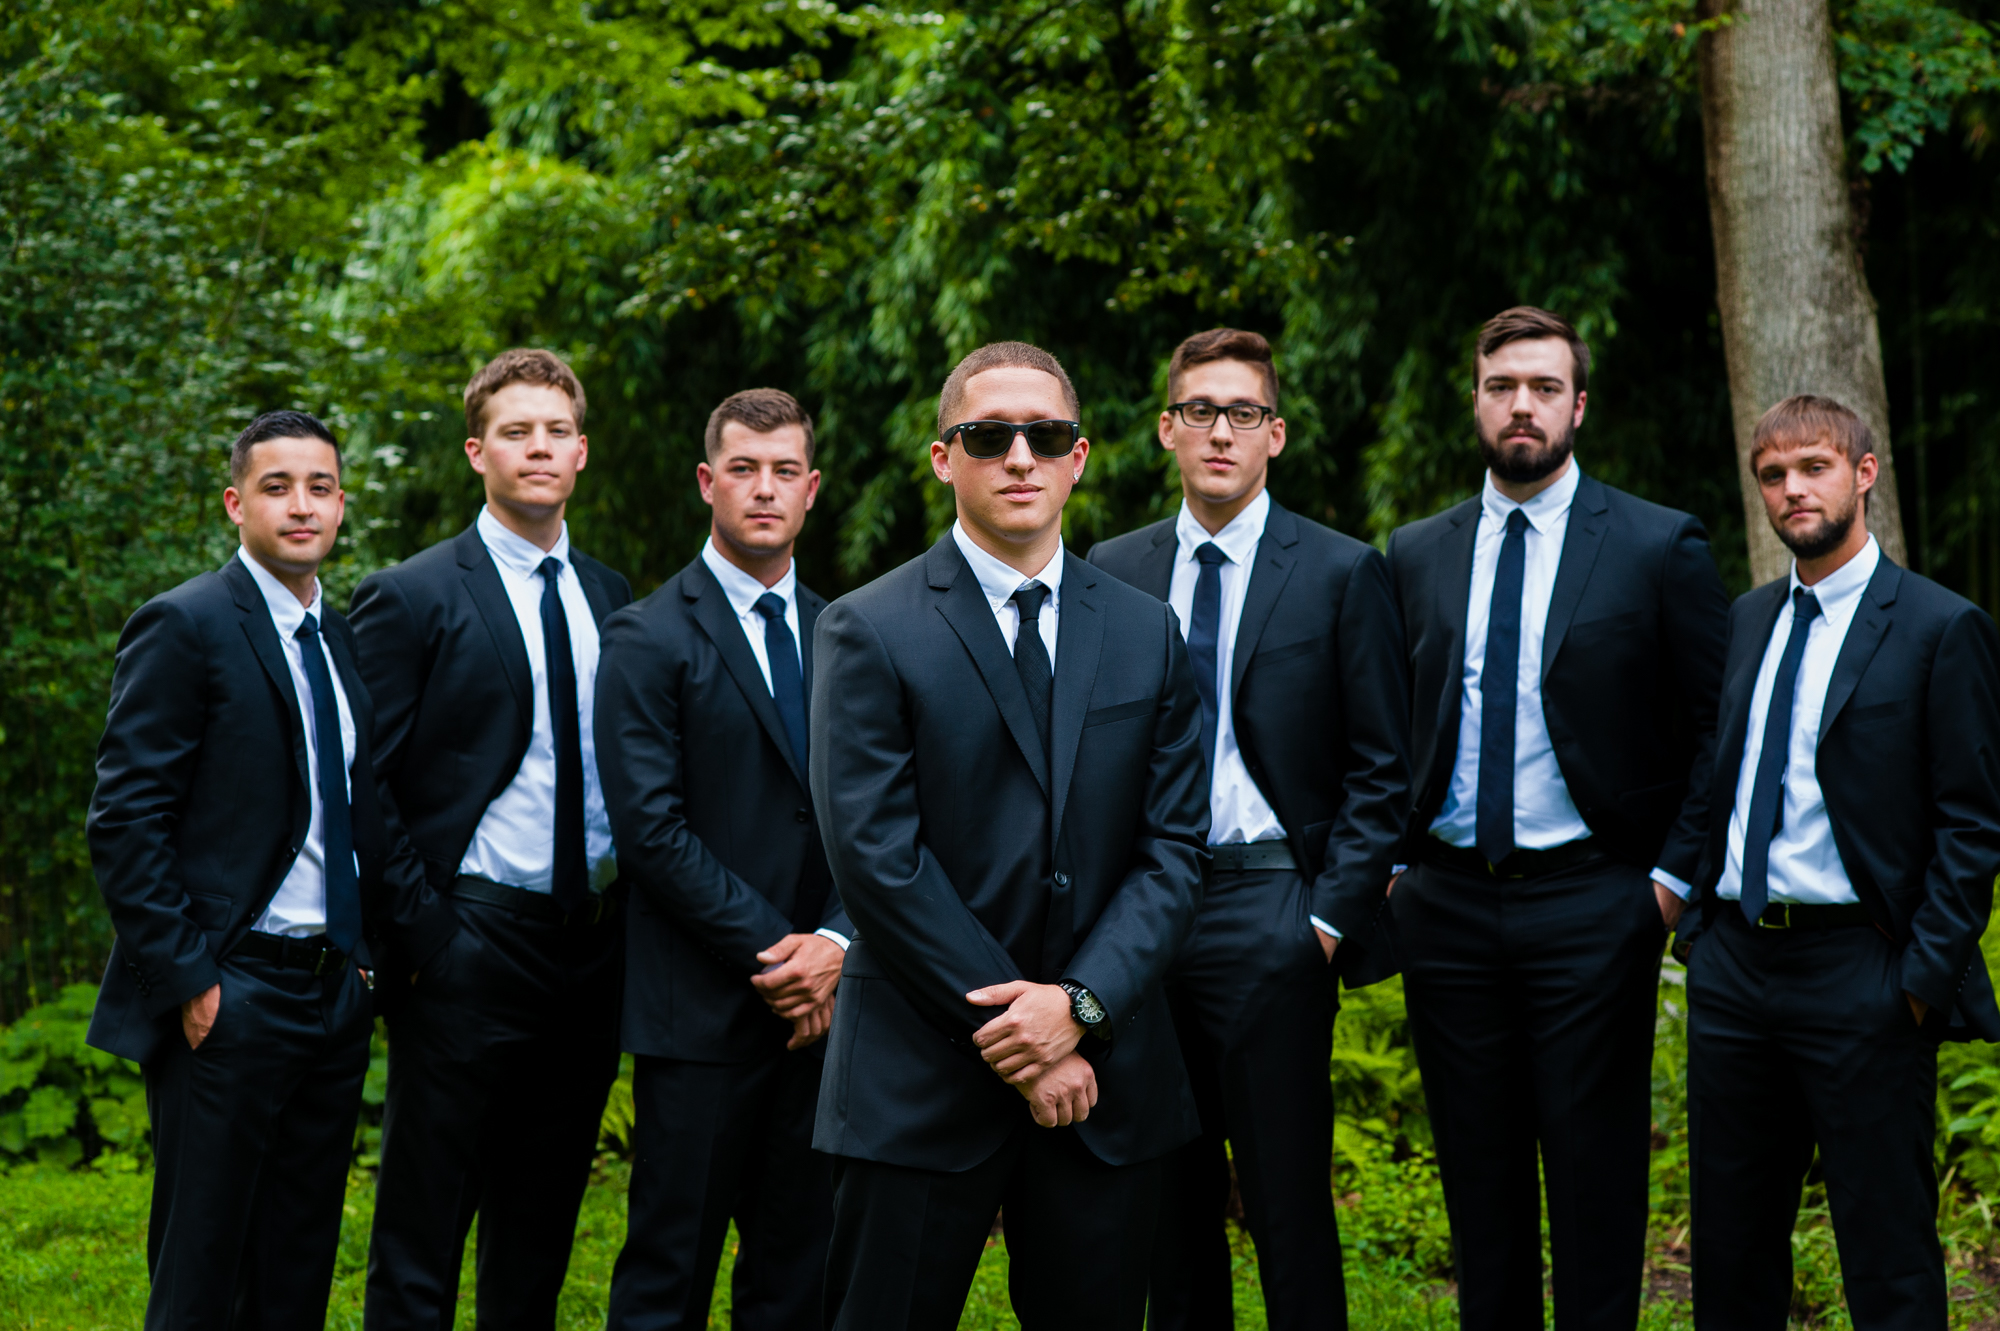 groom and groomsmen pose for portraits at the biltmore